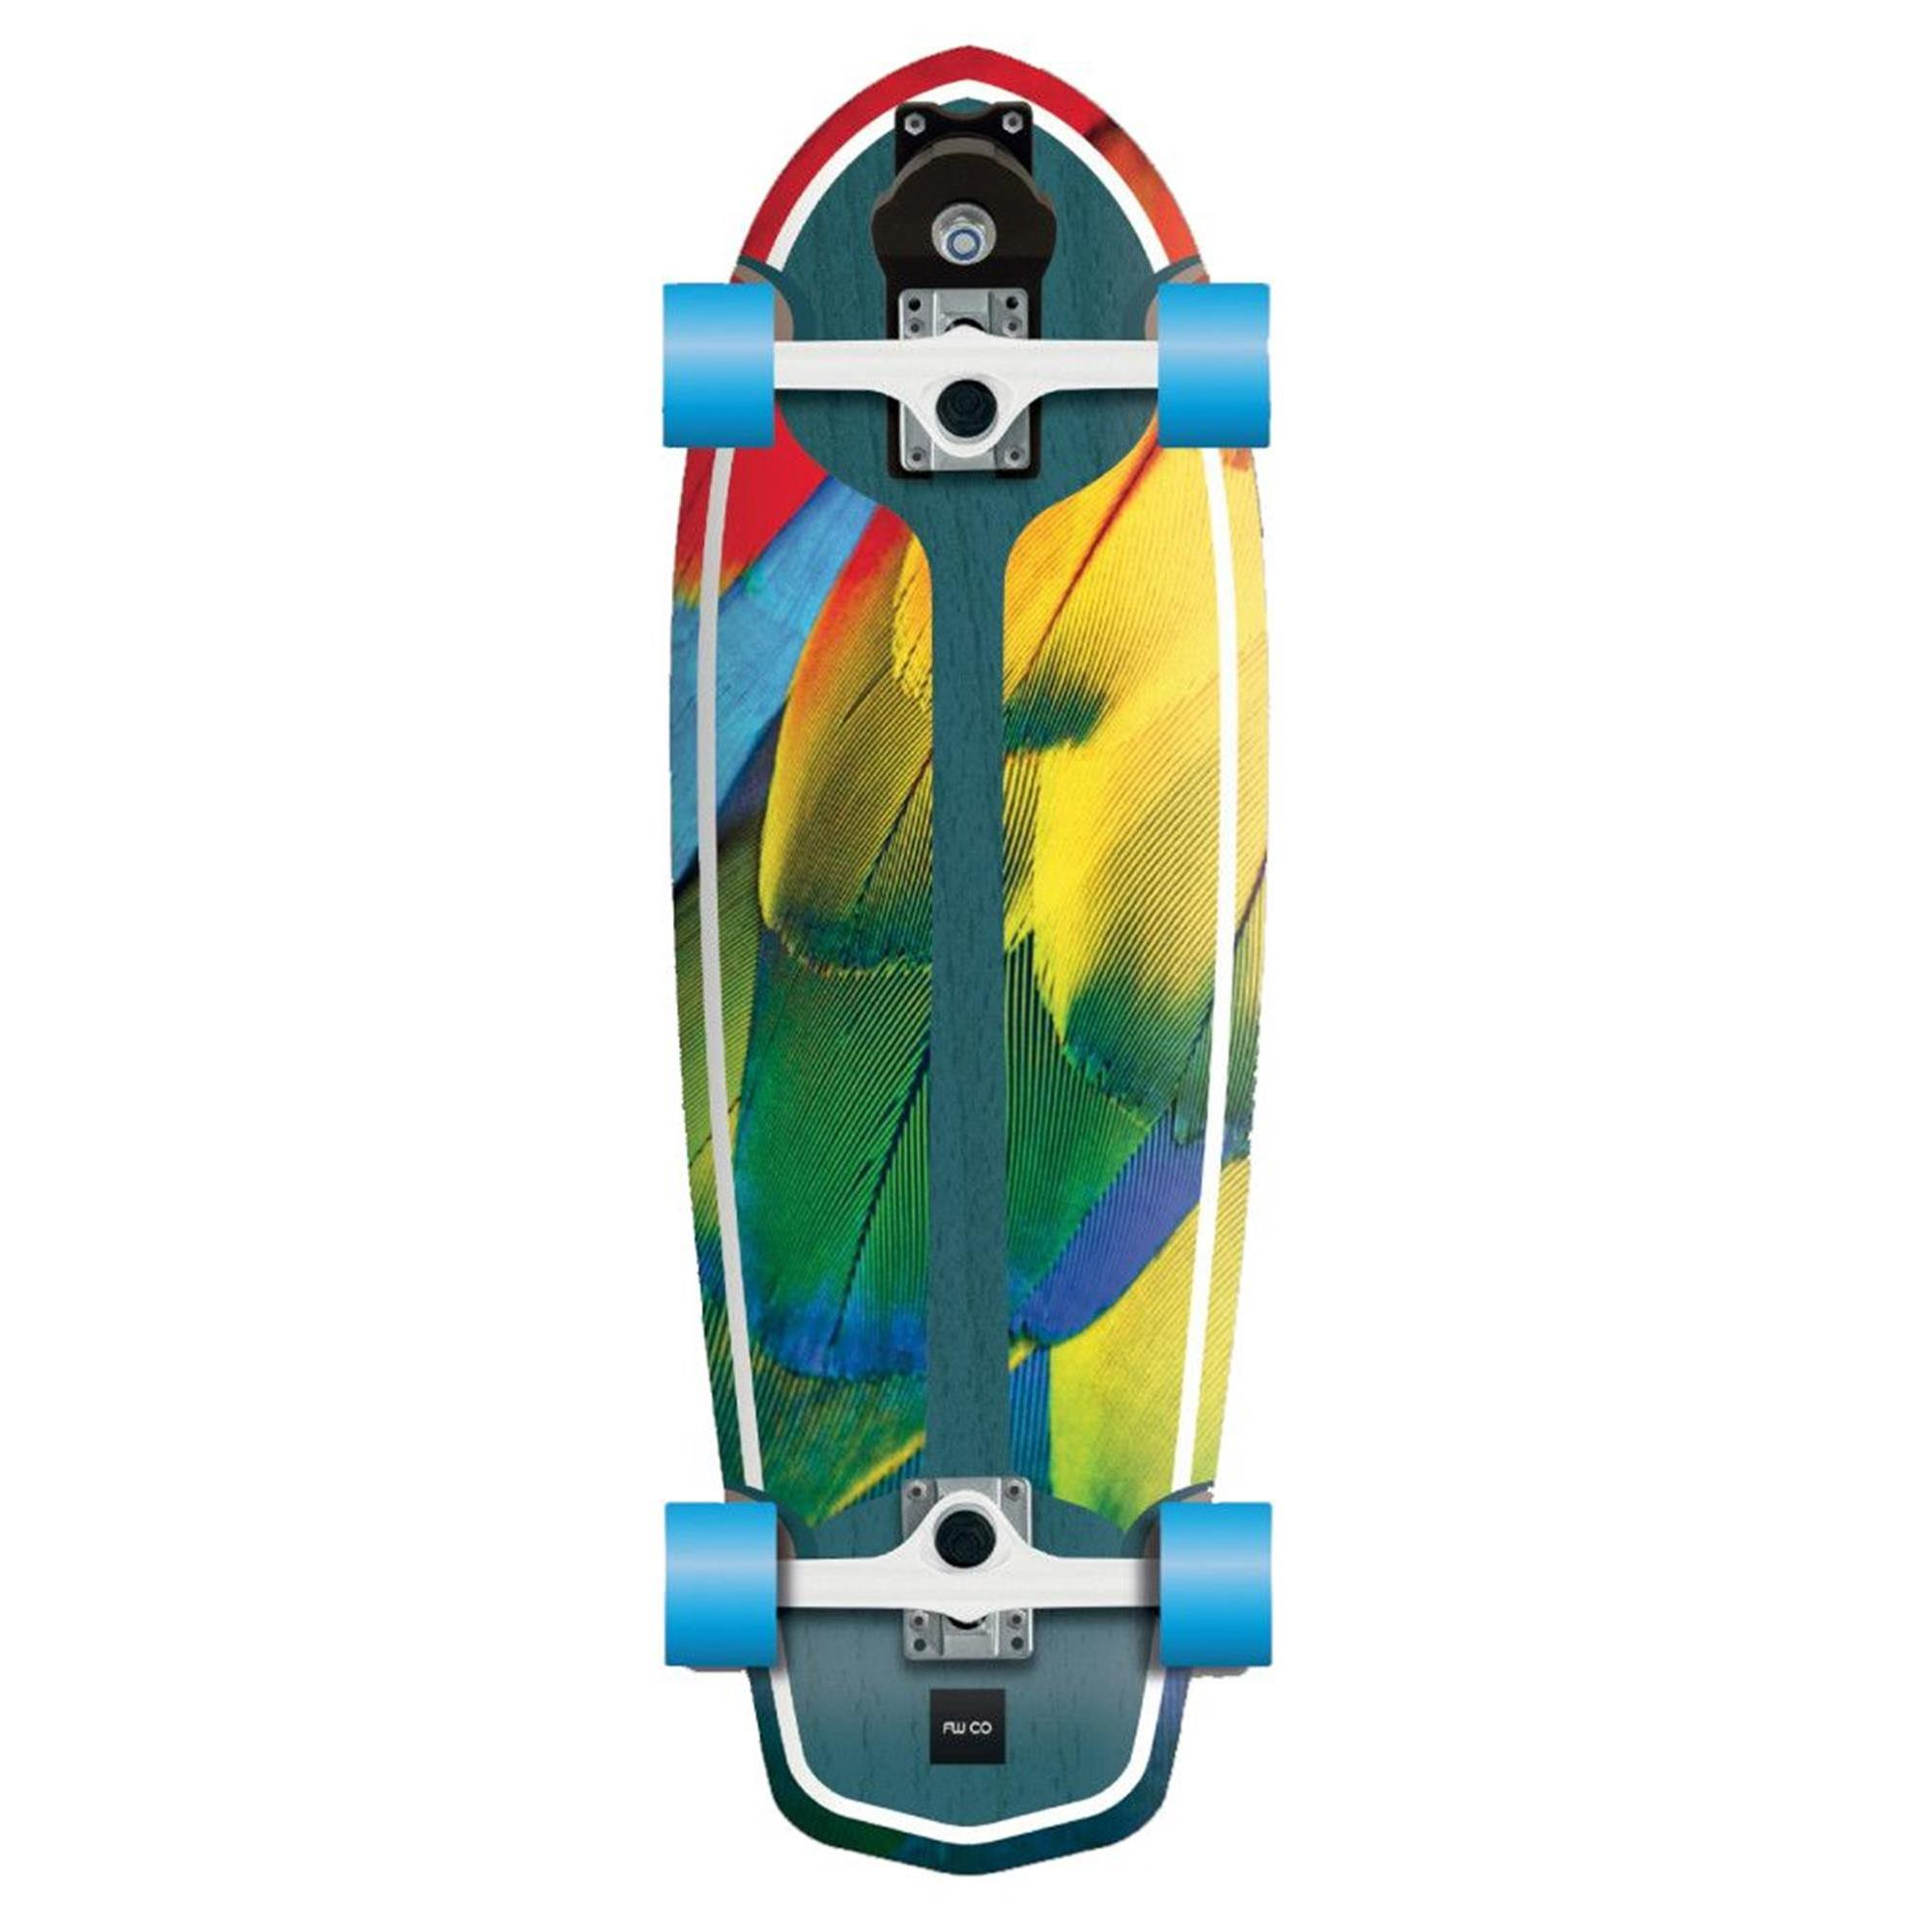 FLYING WHEELS Surf Skateboard 29 Parrot Lombard Surfskate